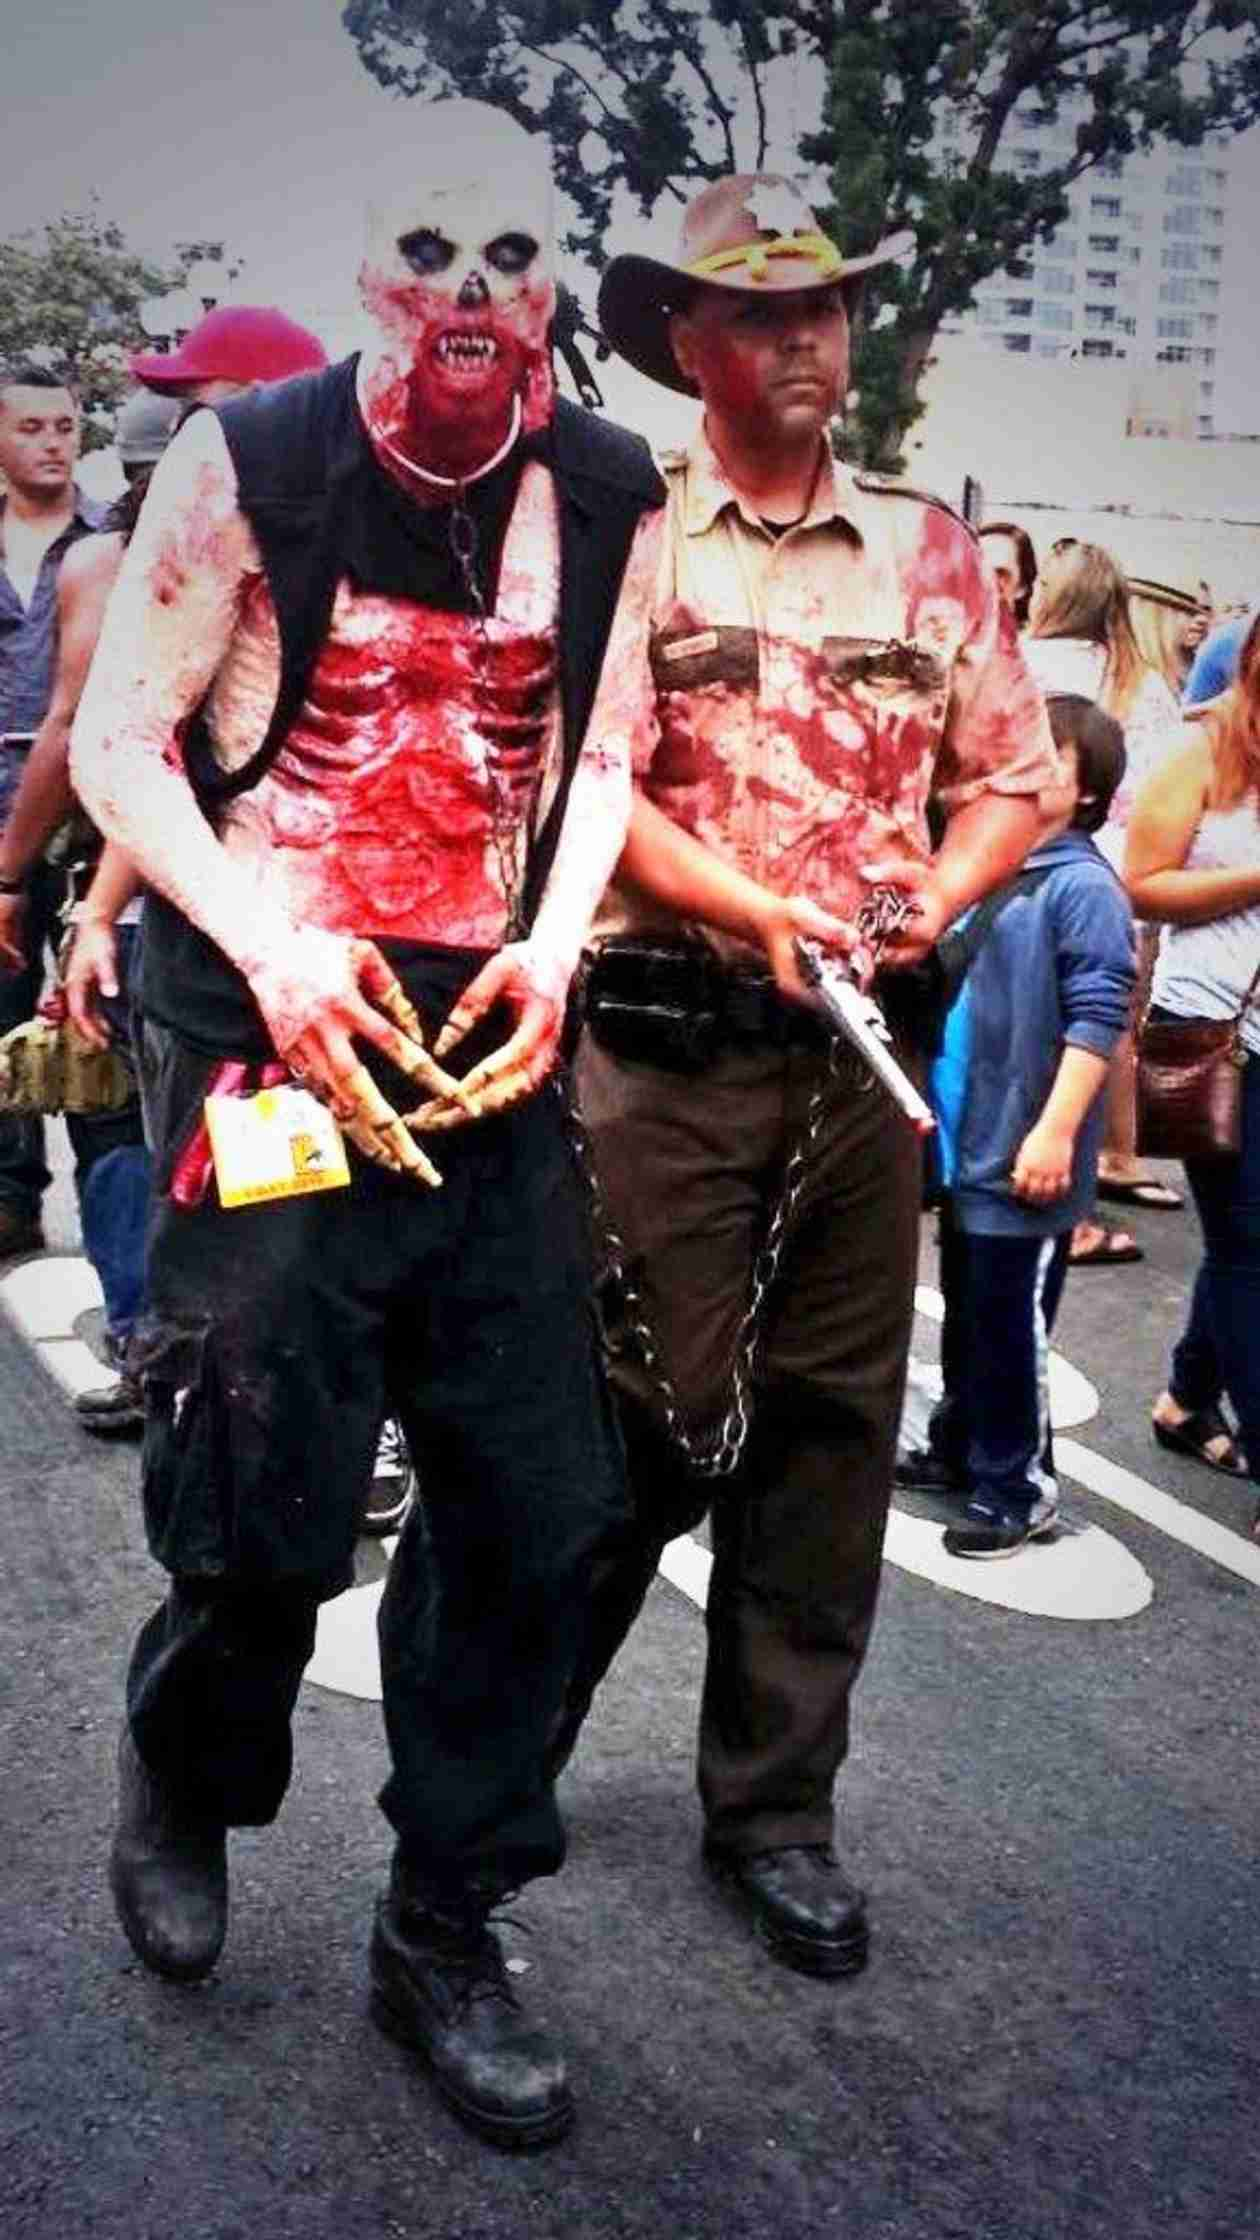 Woman, 64, Hit By Car During Comic-Con ZombieWalk (VIDEO)